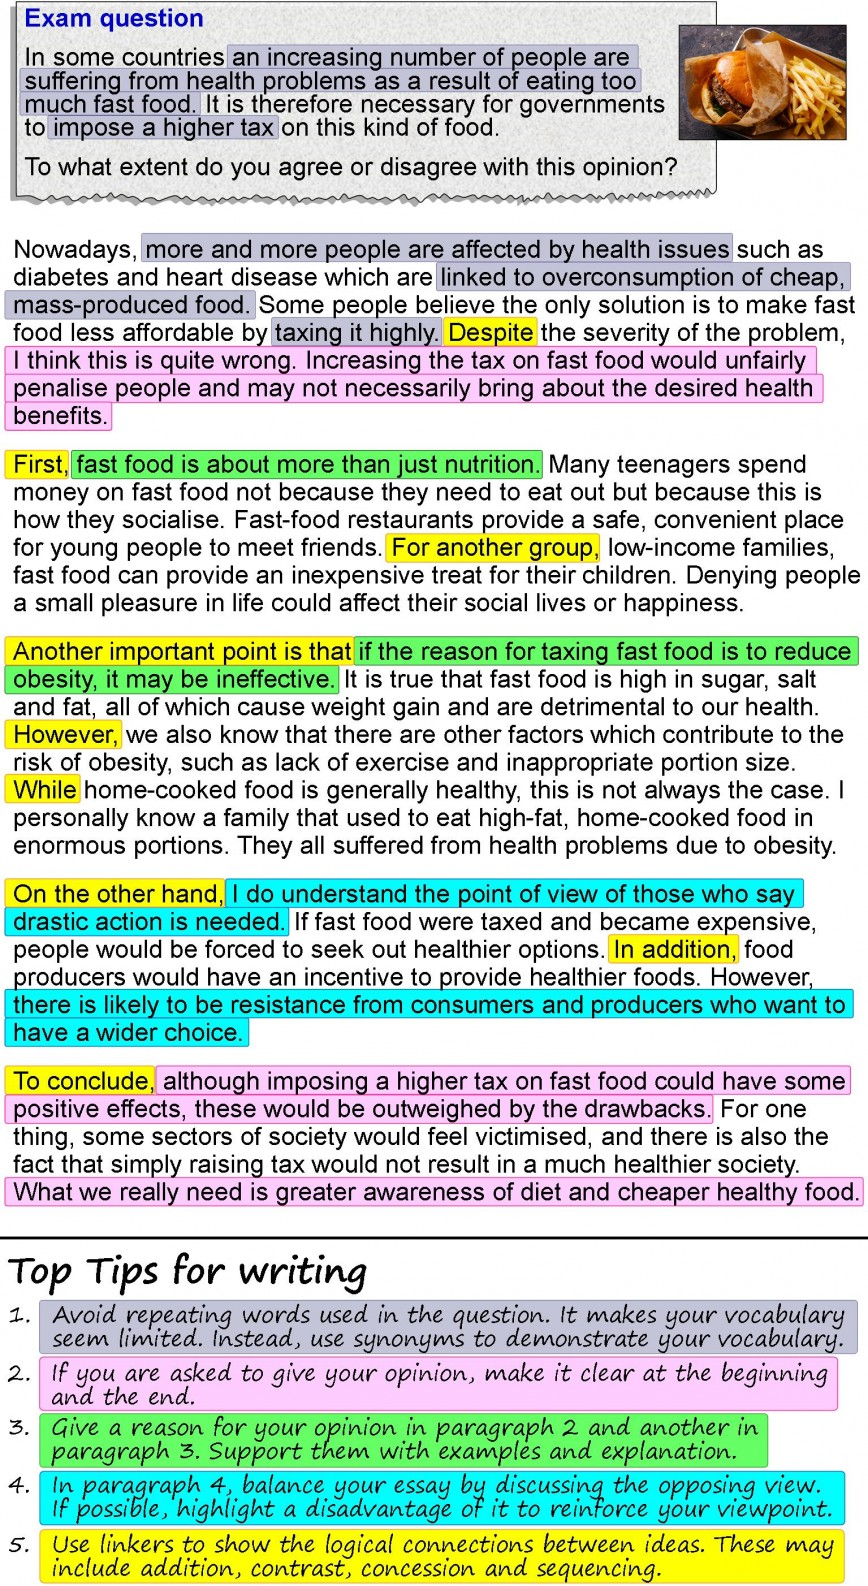 001 Opinion Essay About Fast Food Example An 4 Unbelievable Restaurants 868